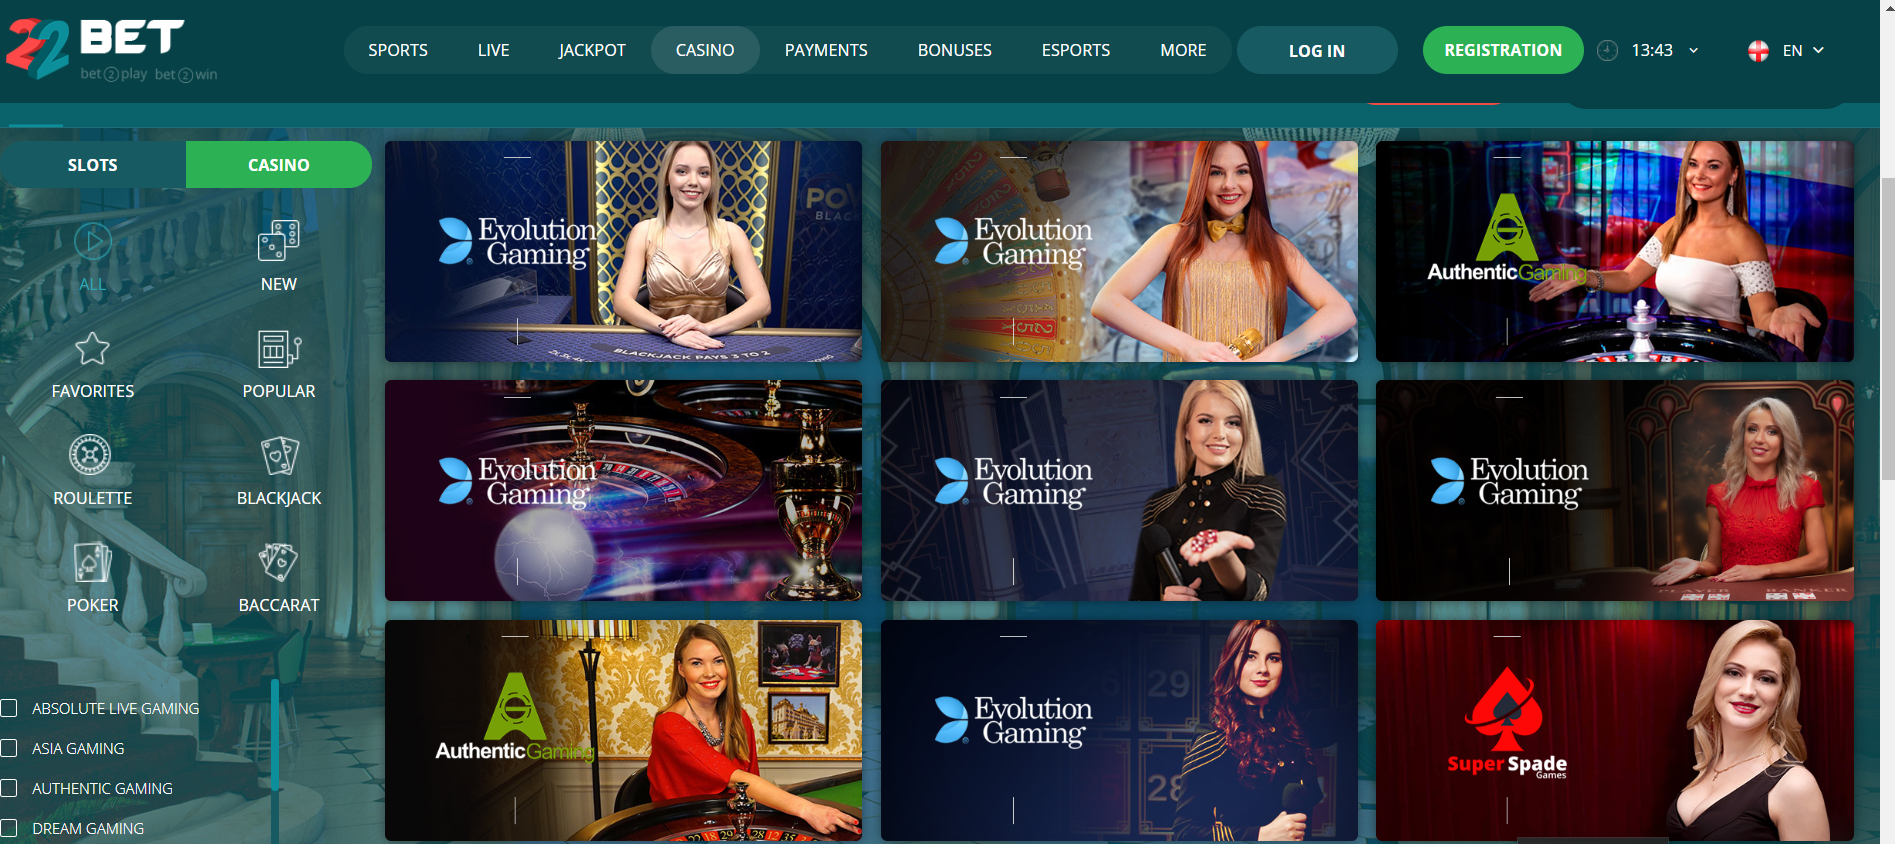 How to Earn Money While Simultaneously Having Fun by Playing Casino Games Online?